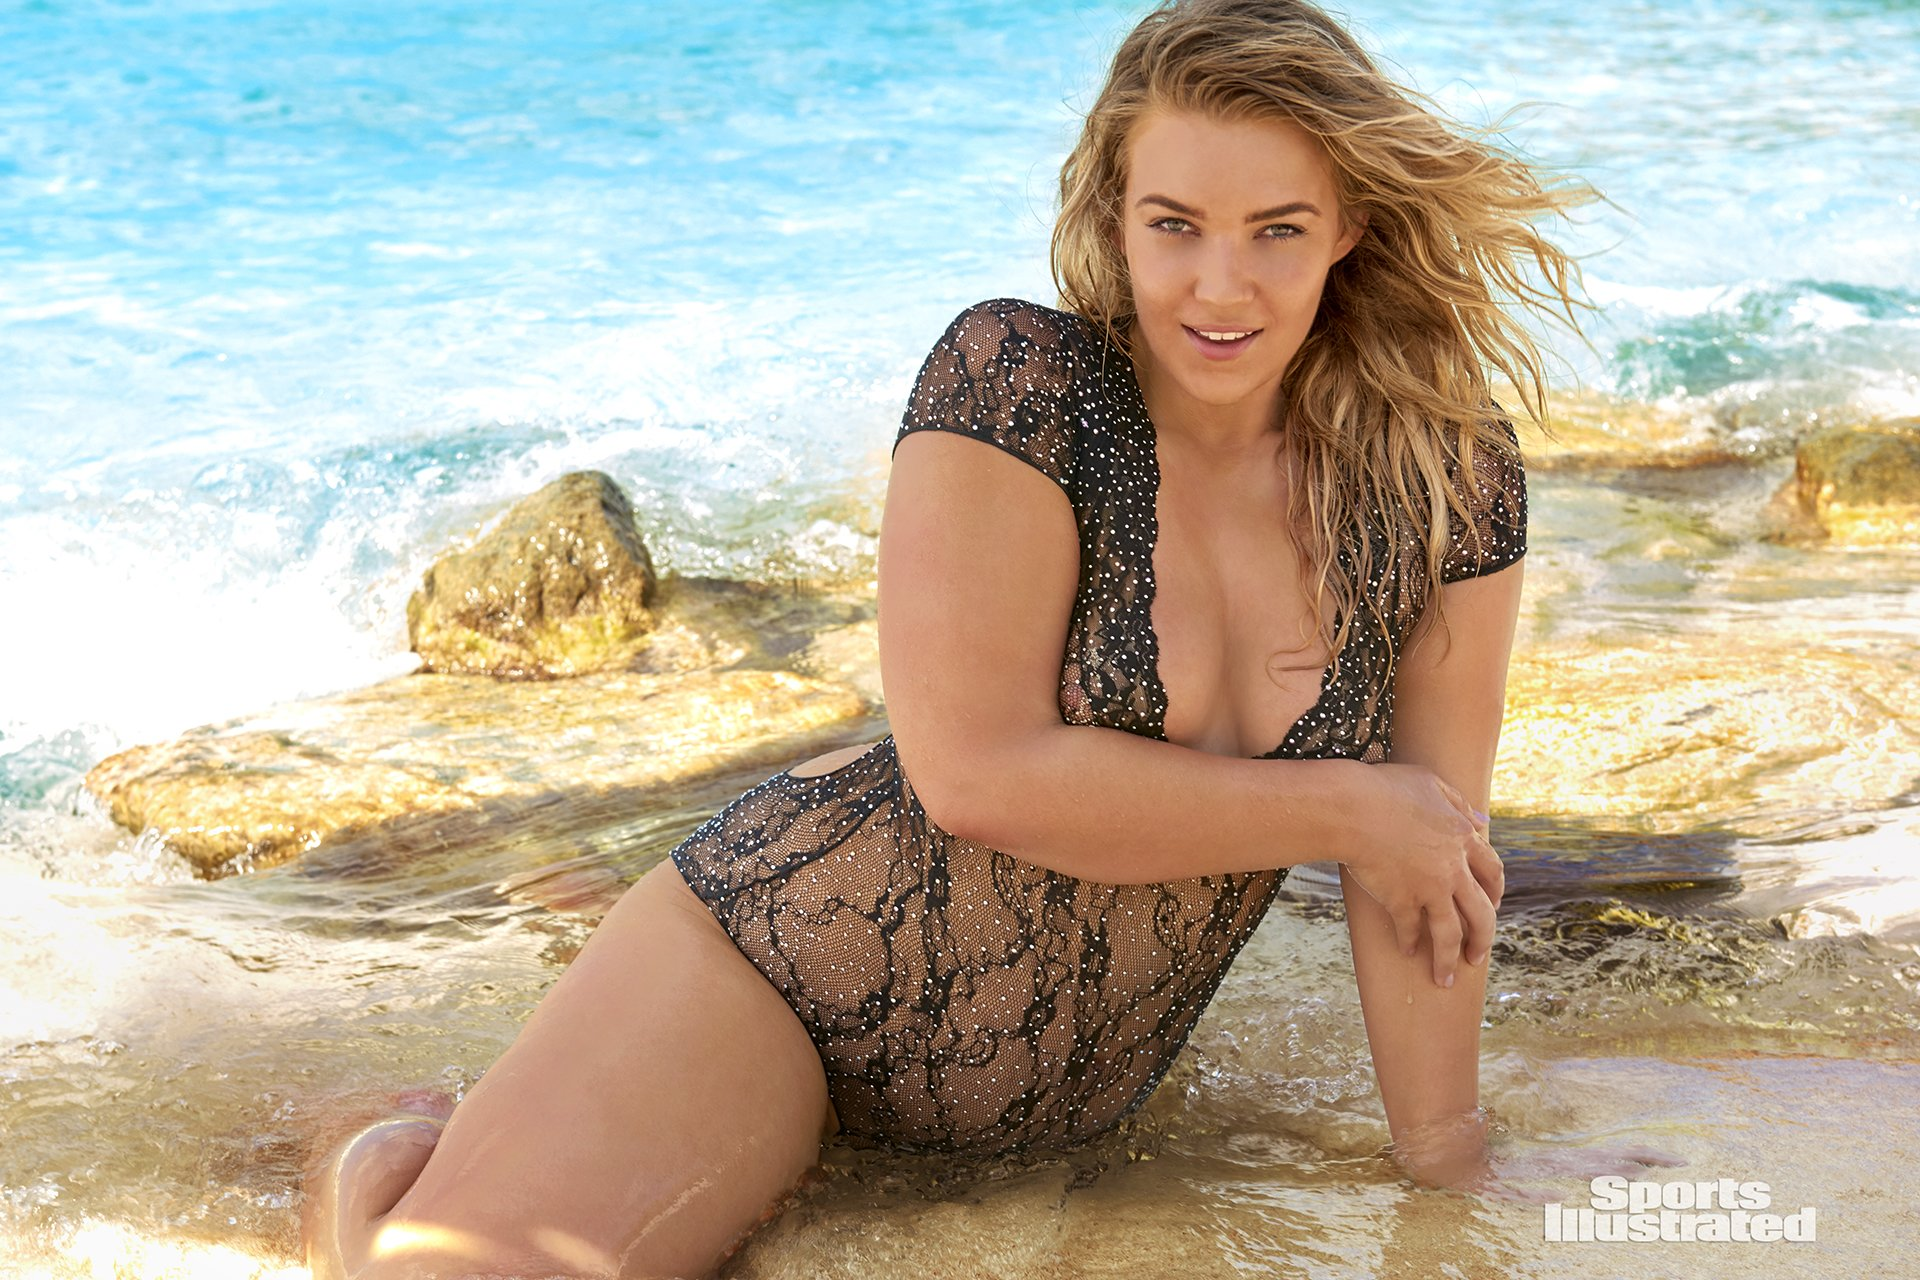 Sports Illustrated Swimsuit Issue 2018012.jpg